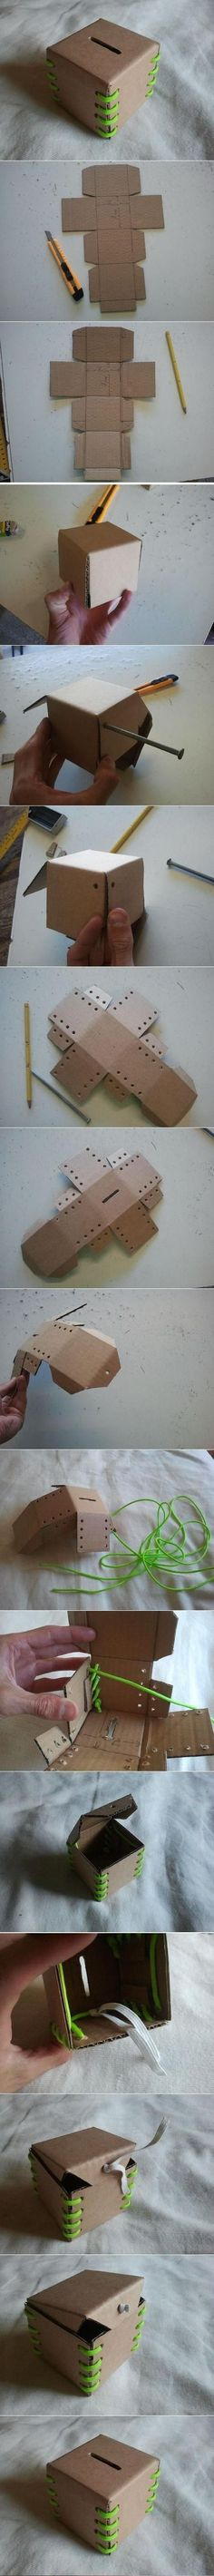 1 carton + 1 lacet = 1 tirelire / DIY Cardboard Lace-Up Bank Easy Crafts, Diy And Crafts, Arts And Crafts, Diy Paper, Paper Crafting, Diy Projects To Try, Craft Projects, Craft Ideas, Diy Ideas